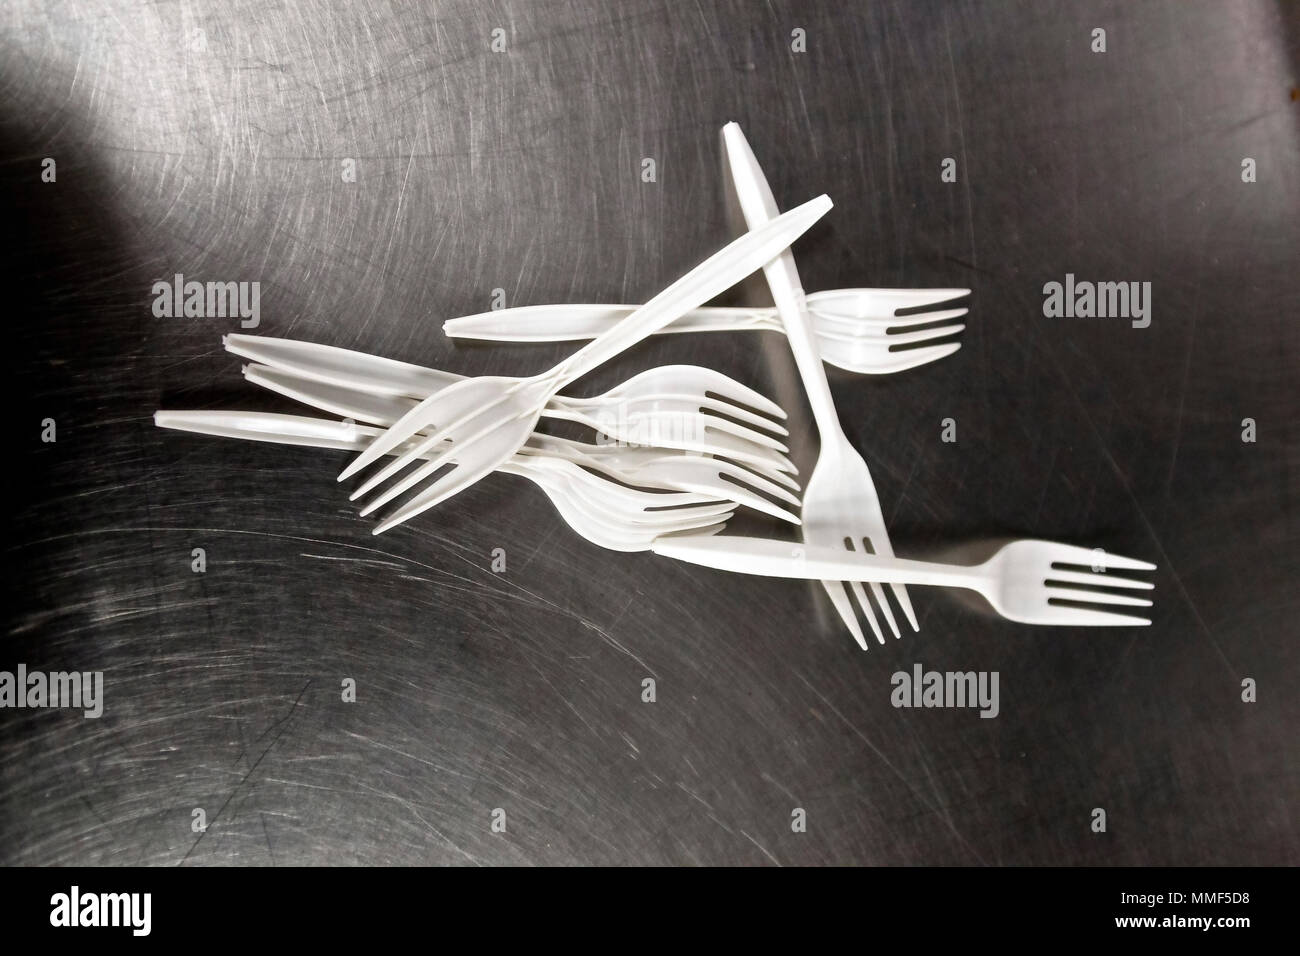 Artistic Arrangement of plastic forks on a scratched stainless steel surface still life - Stock Image